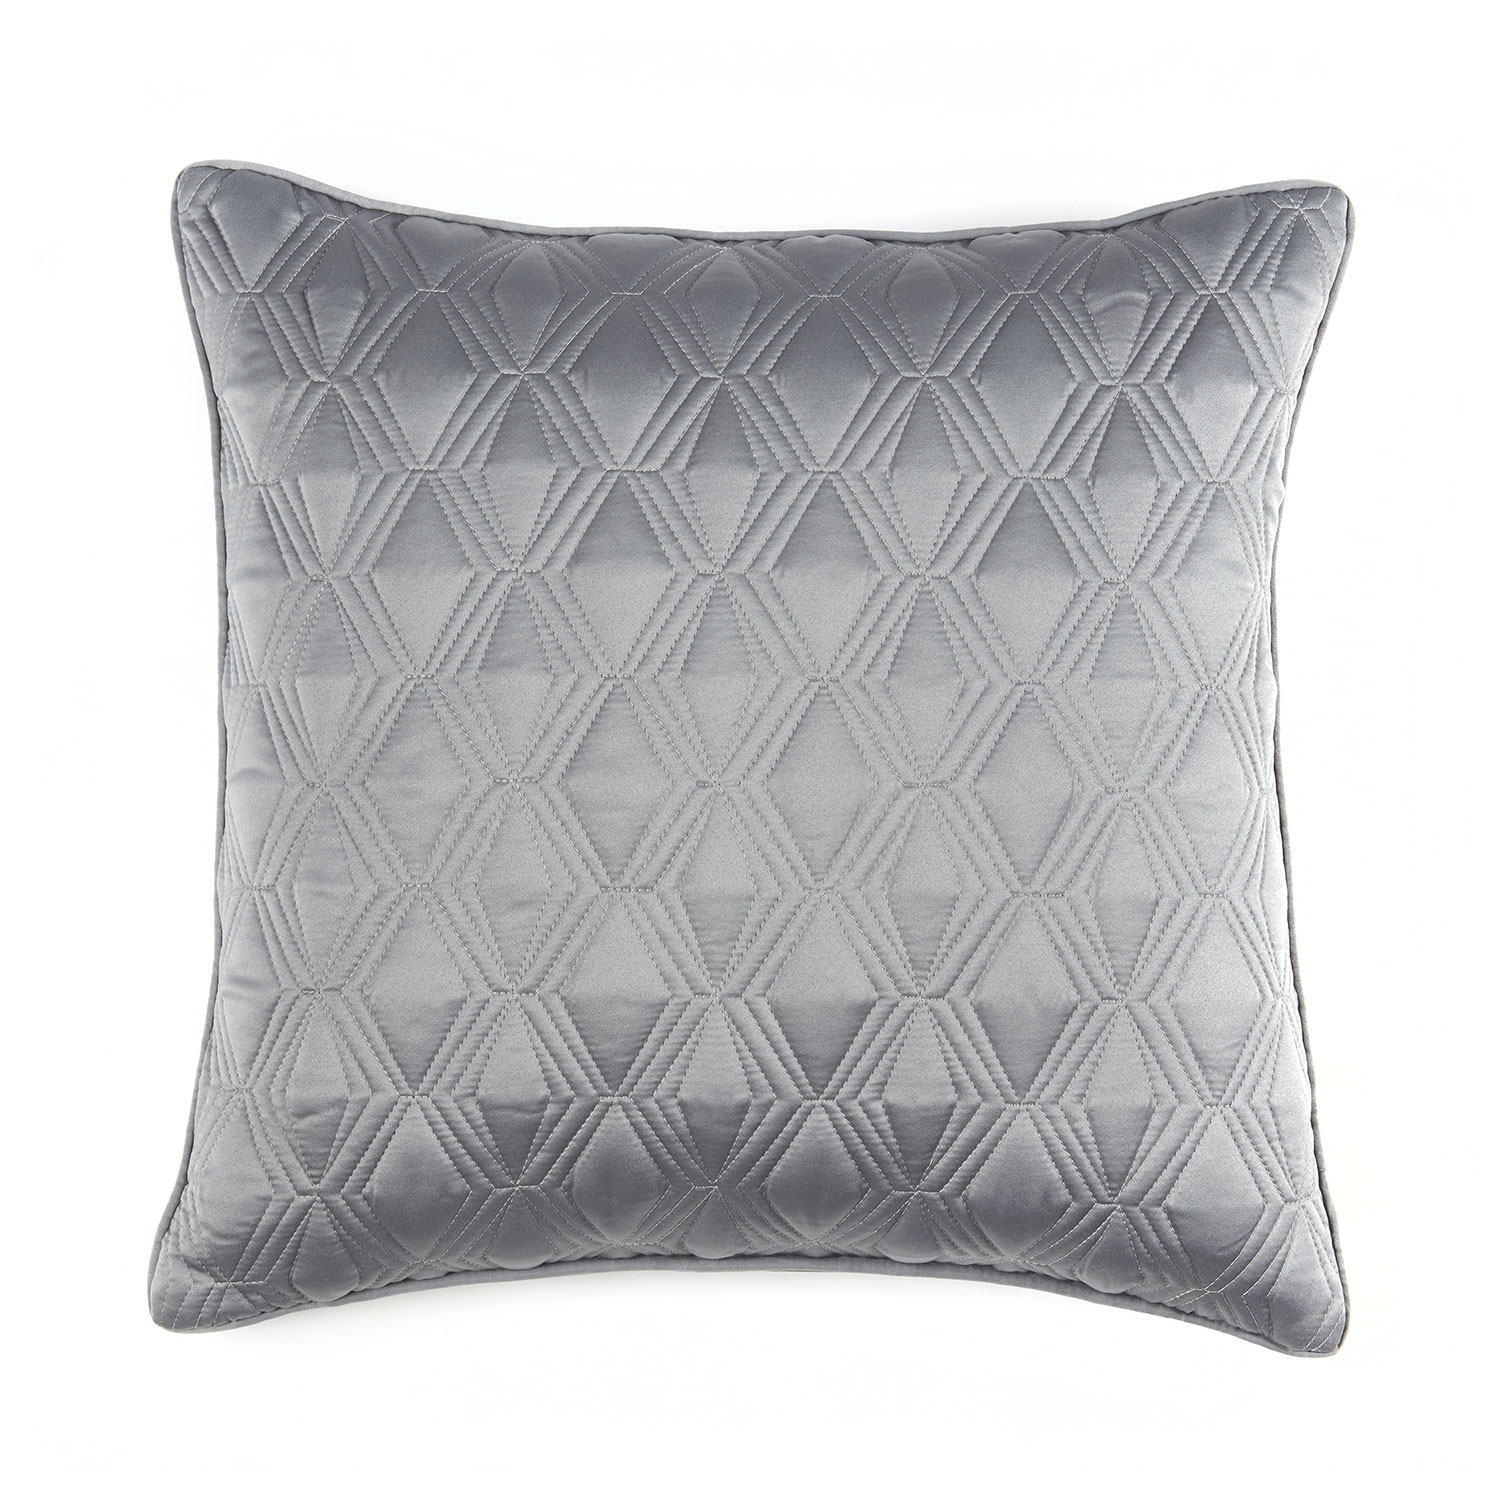 Blossom Silver Grey Luxury Quilted Square Cushion Cover